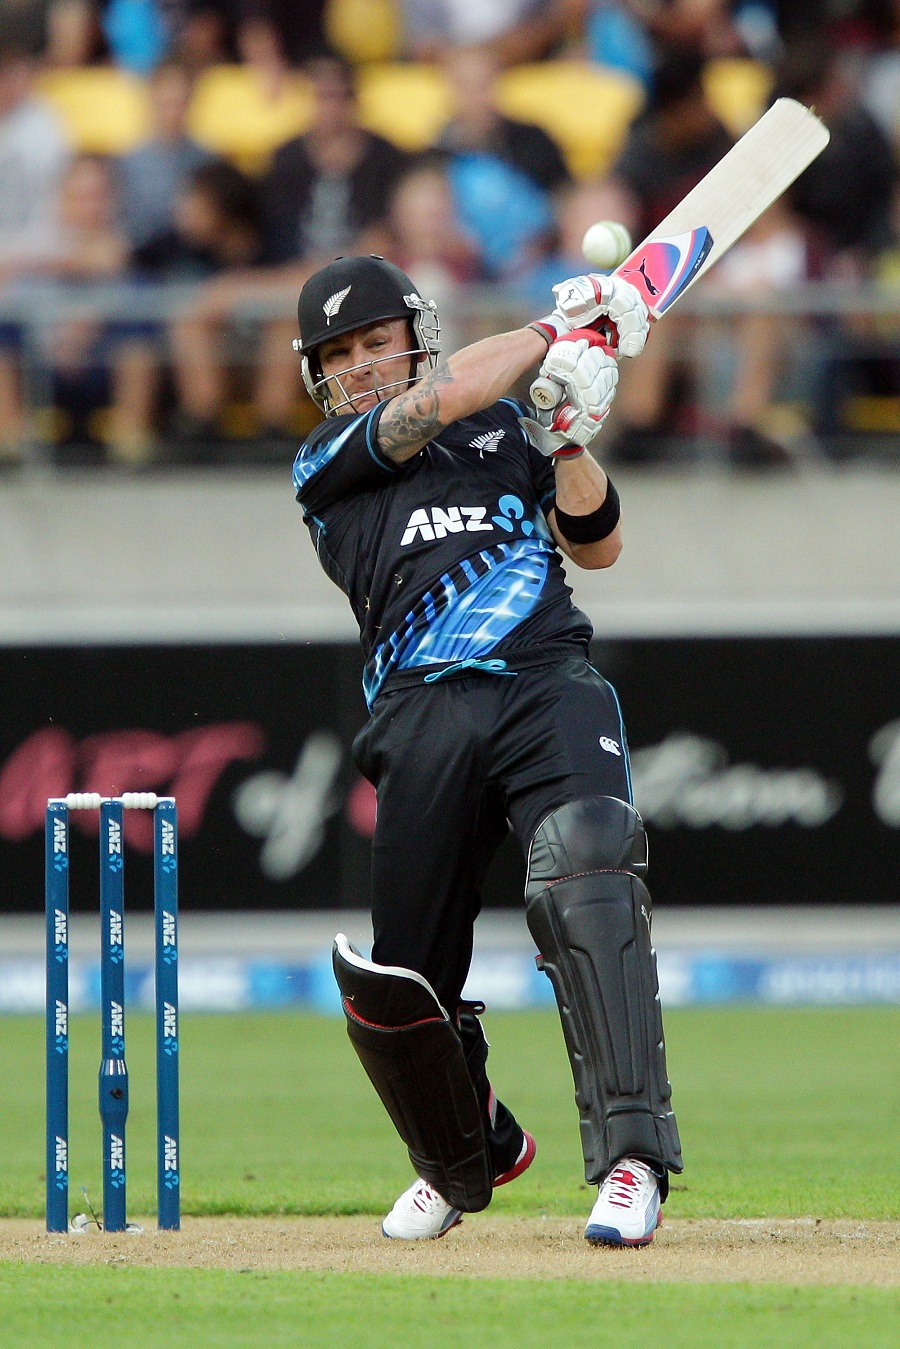 Cute Animated Cartoon Wallpapers For Mobile Brendon Mccullum Wallpaper Hd